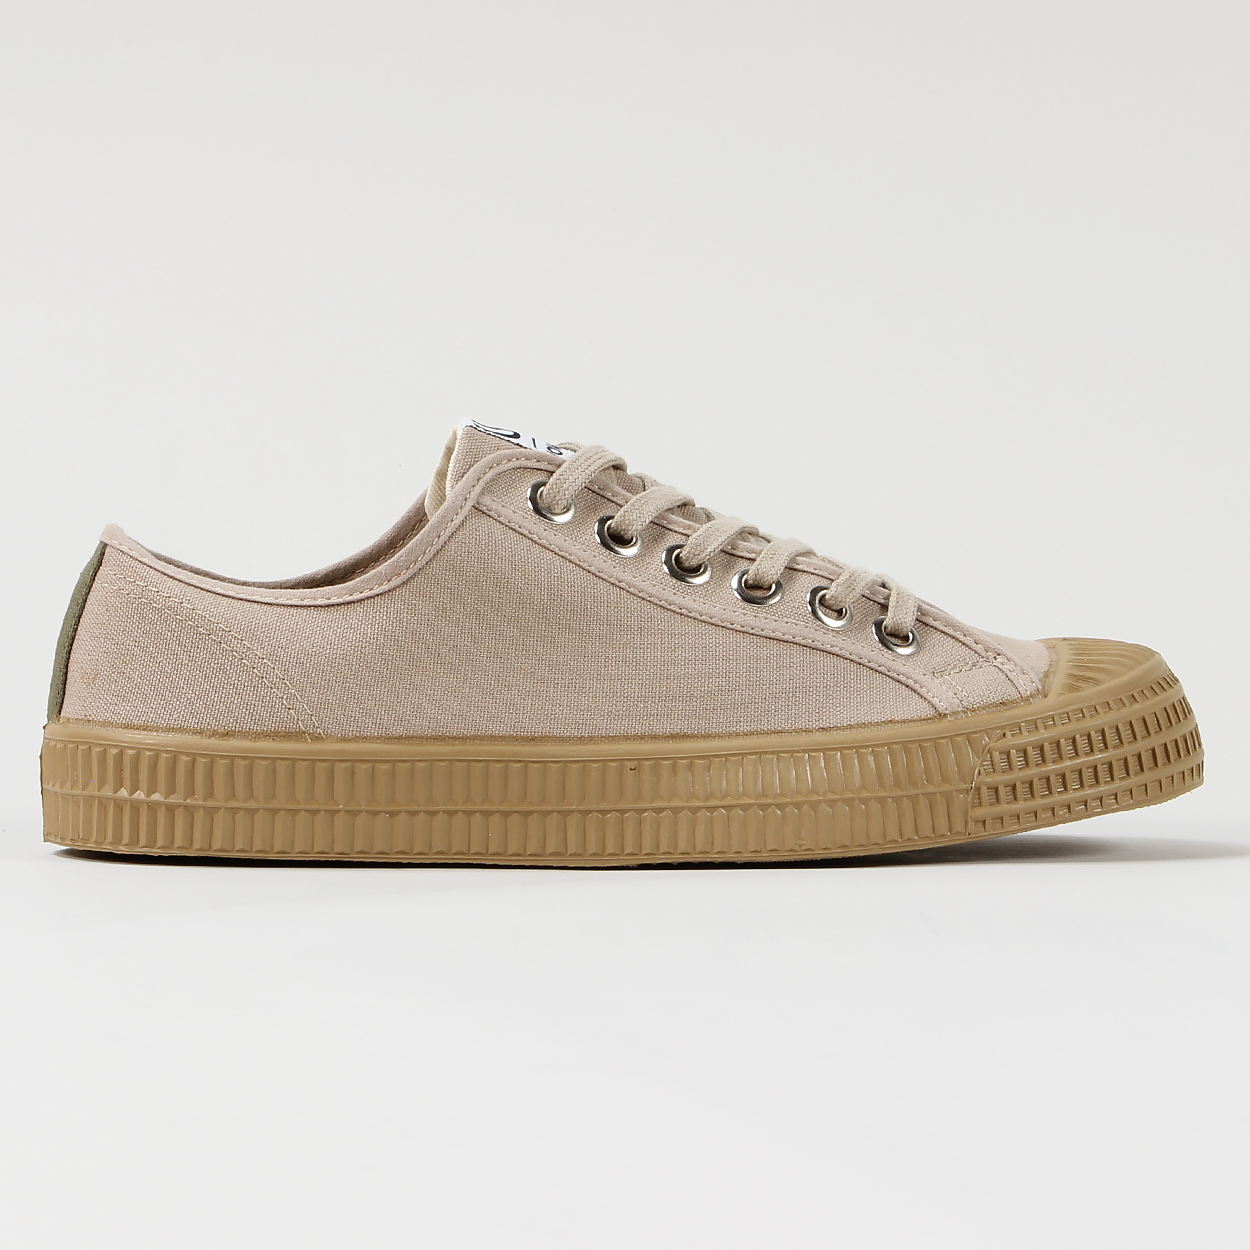 bee95136f72e Universal Works x Novesta Star Master Shoes Sand Beige Canvas £48.75